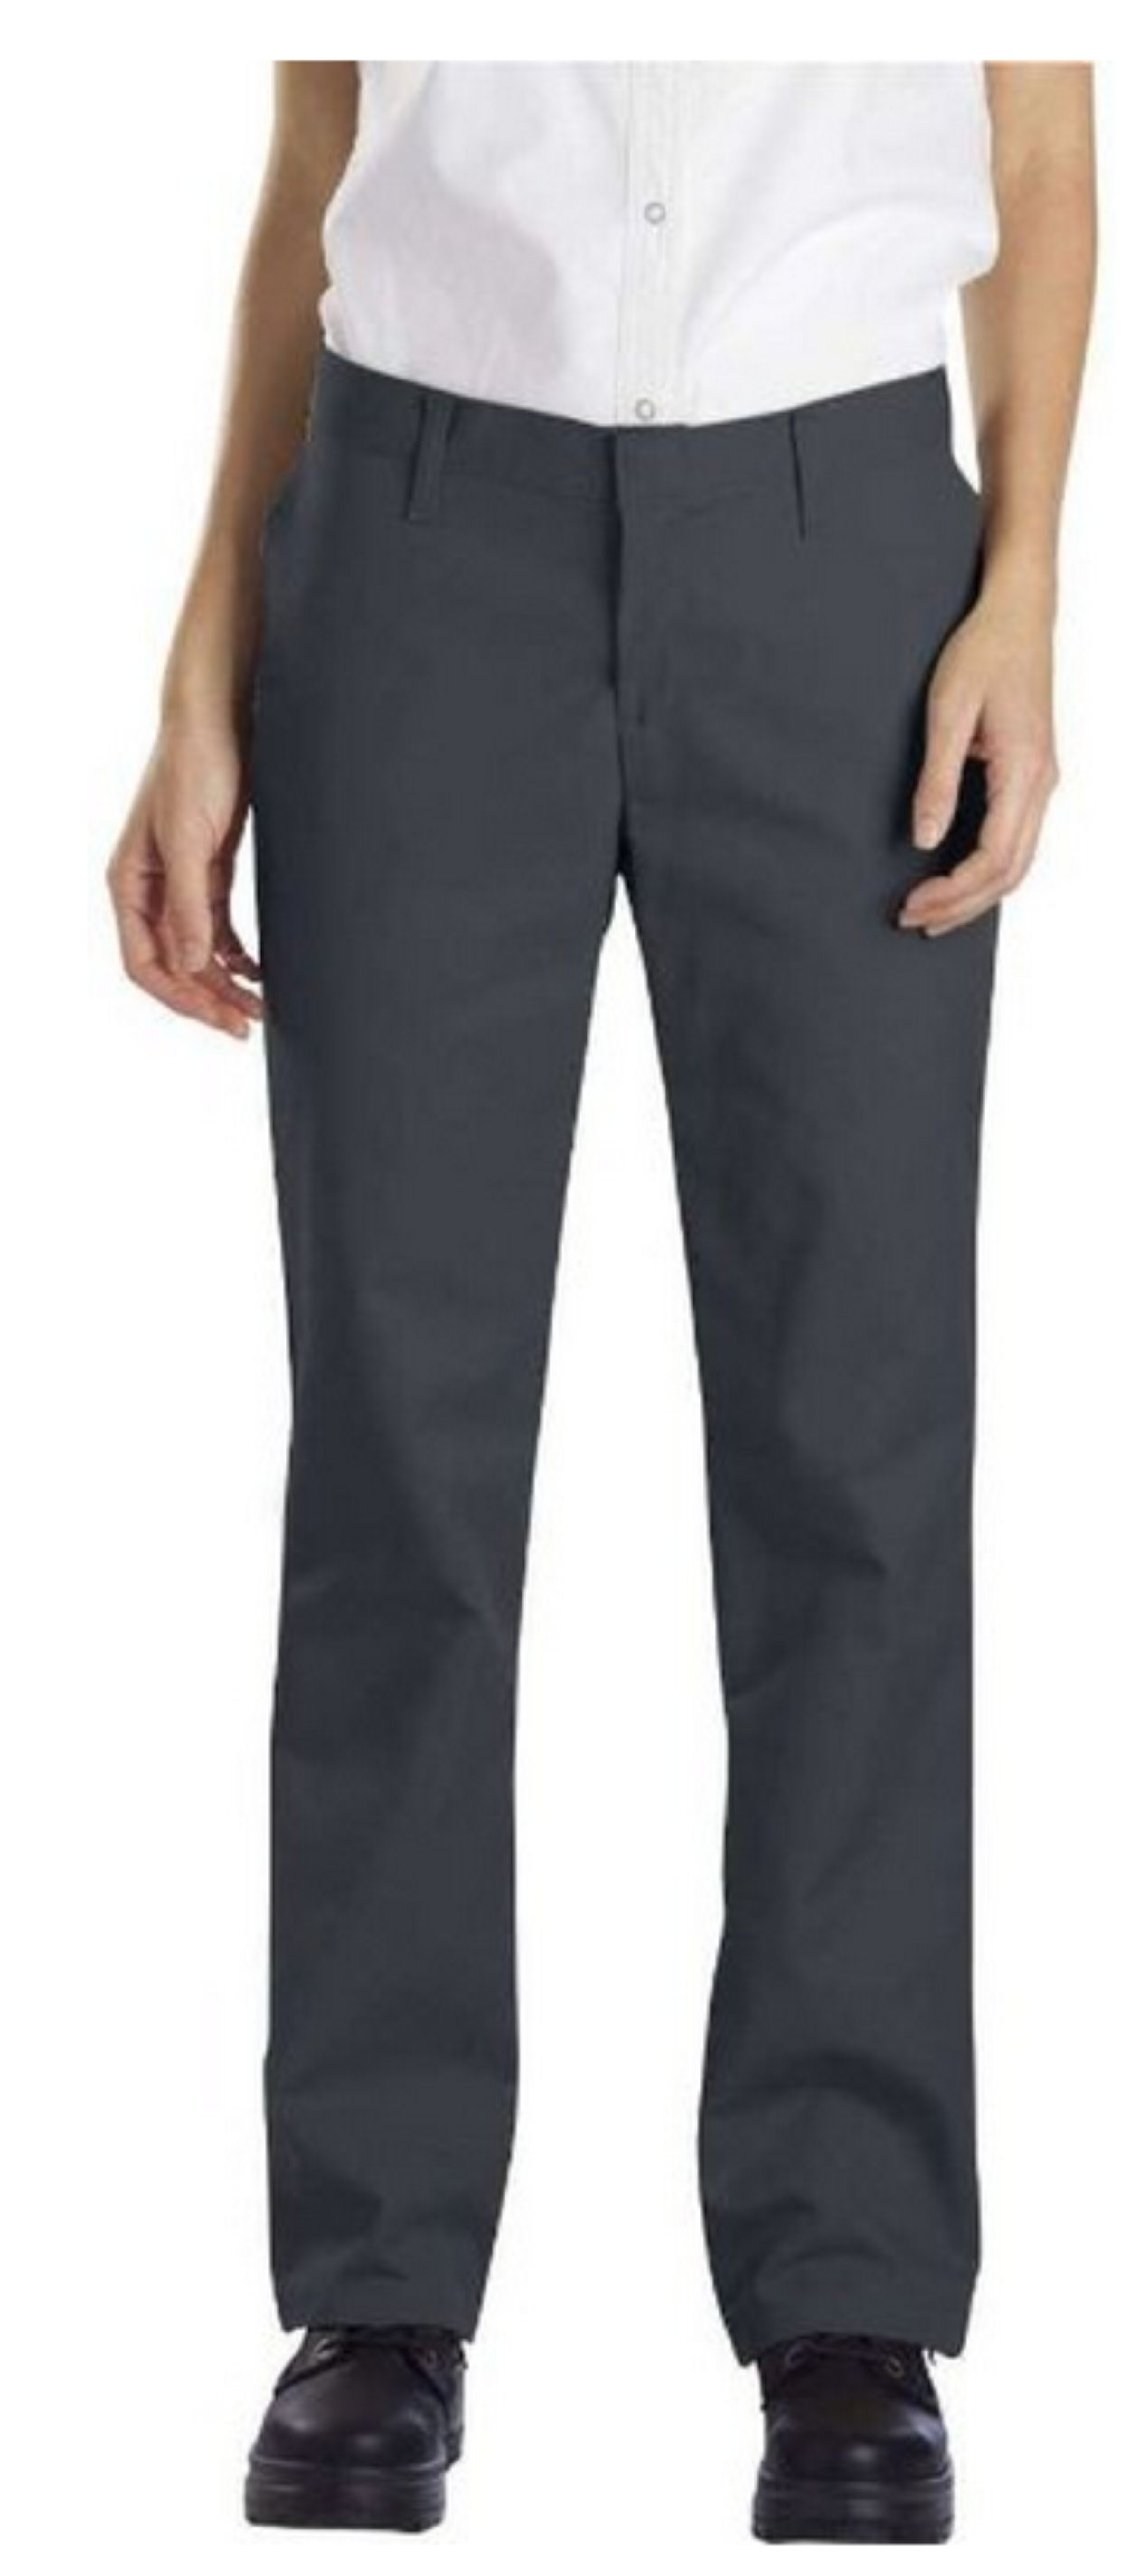 Dickies Occupational Workwear FP322CH 20 RG Polyester/ Cotton Relaxed Fit Women's Industrial Flat Front Pant with Straight Leg, 20 Regular, 31-1/ 2'' Inseam, Charcoal